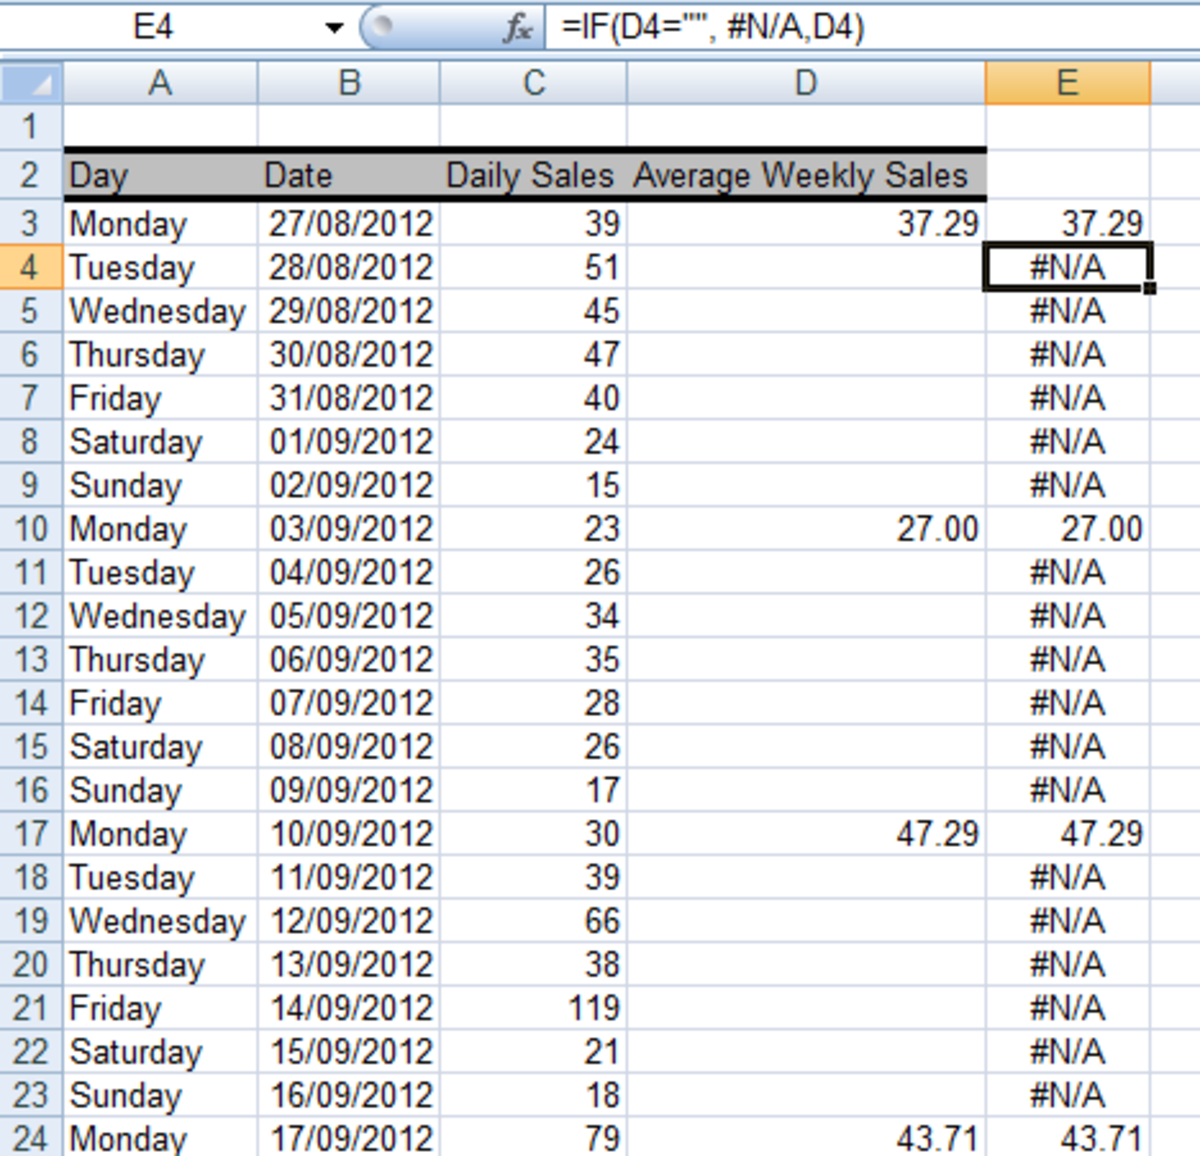 Ediblewildsus  Stunning How To Get Excel  And  To Ignore Empty Cells In A Chart Or  With Extraordinary Using The If Function In A Formula To Convert Empty Cells To Na With Agreeable If And Functions In Excel Also Vba Excel Range Cells In Addition How To Convert Excel File To Csv And Packing List Excel As Well As Excel Home Tab Additionally Excel Workbook Open From Turbofuturecom With Ediblewildsus  Extraordinary How To Get Excel  And  To Ignore Empty Cells In A Chart Or  With Agreeable Using The If Function In A Formula To Convert Empty Cells To Na And Stunning If And Functions In Excel Also Vba Excel Range Cells In Addition How To Convert Excel File To Csv From Turbofuturecom